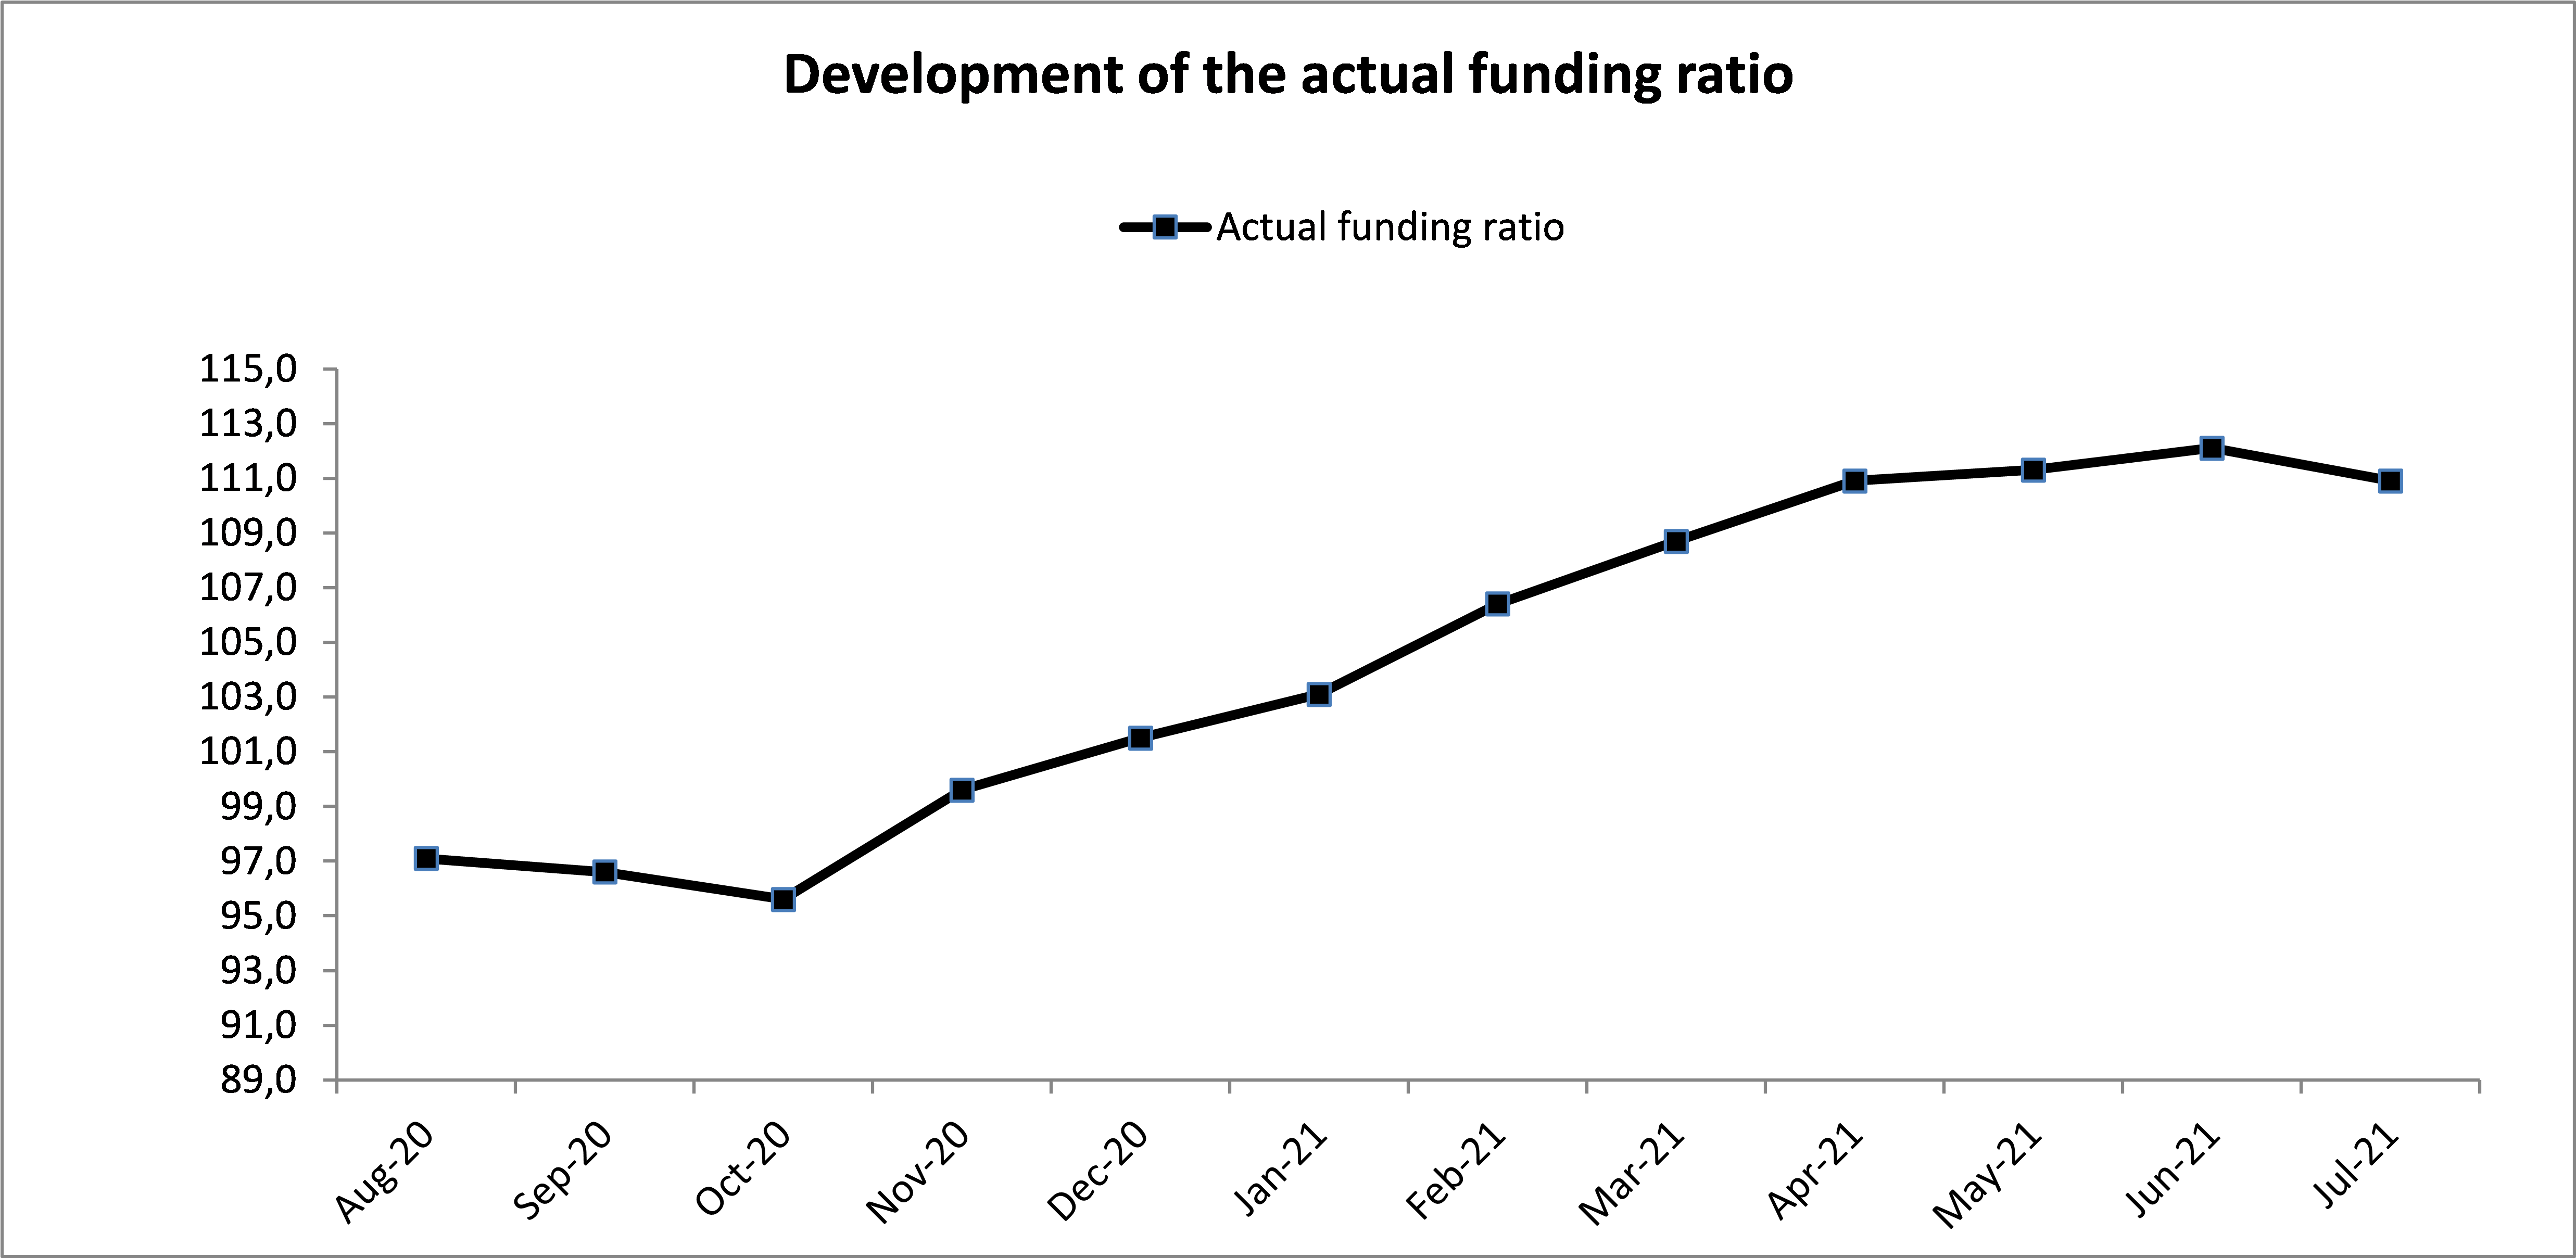 The actual funding ratio as of July, 2021